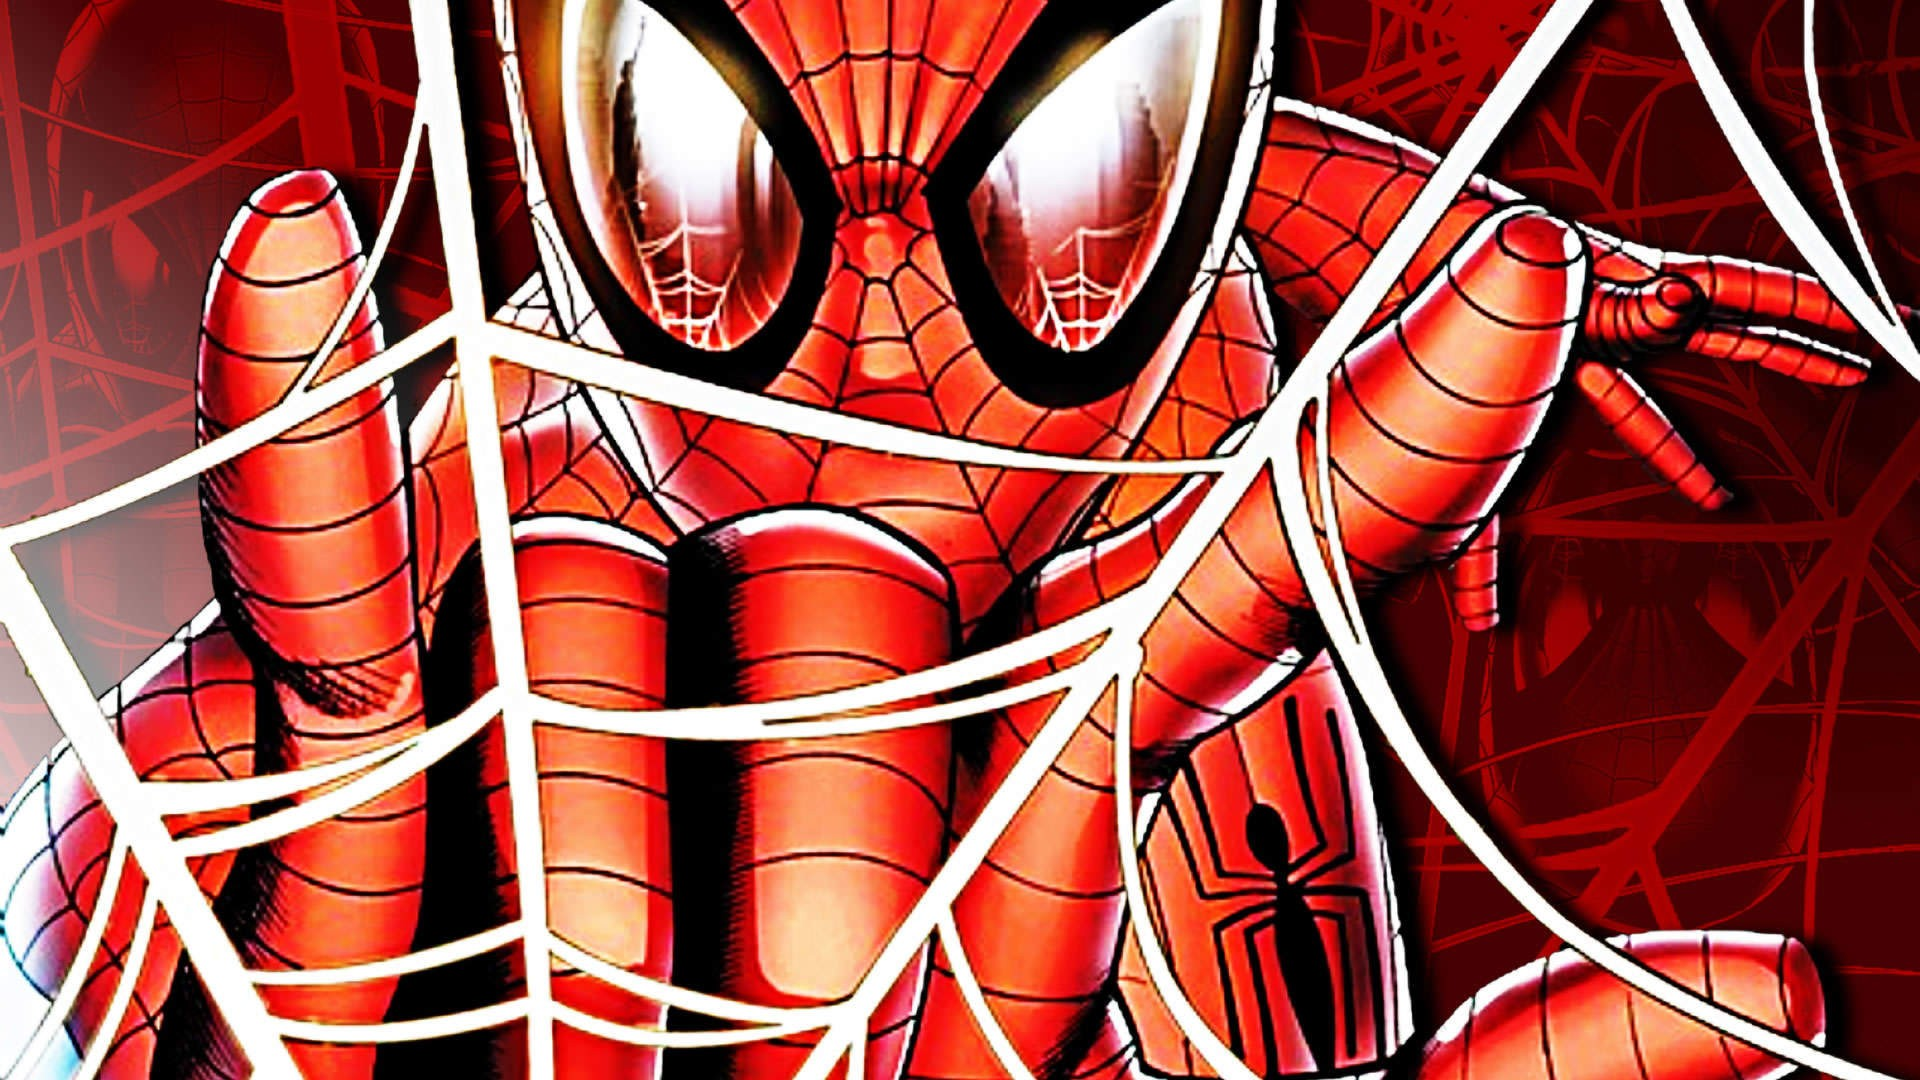 Comic wallpaper ·① Download free amazing wallpapers for